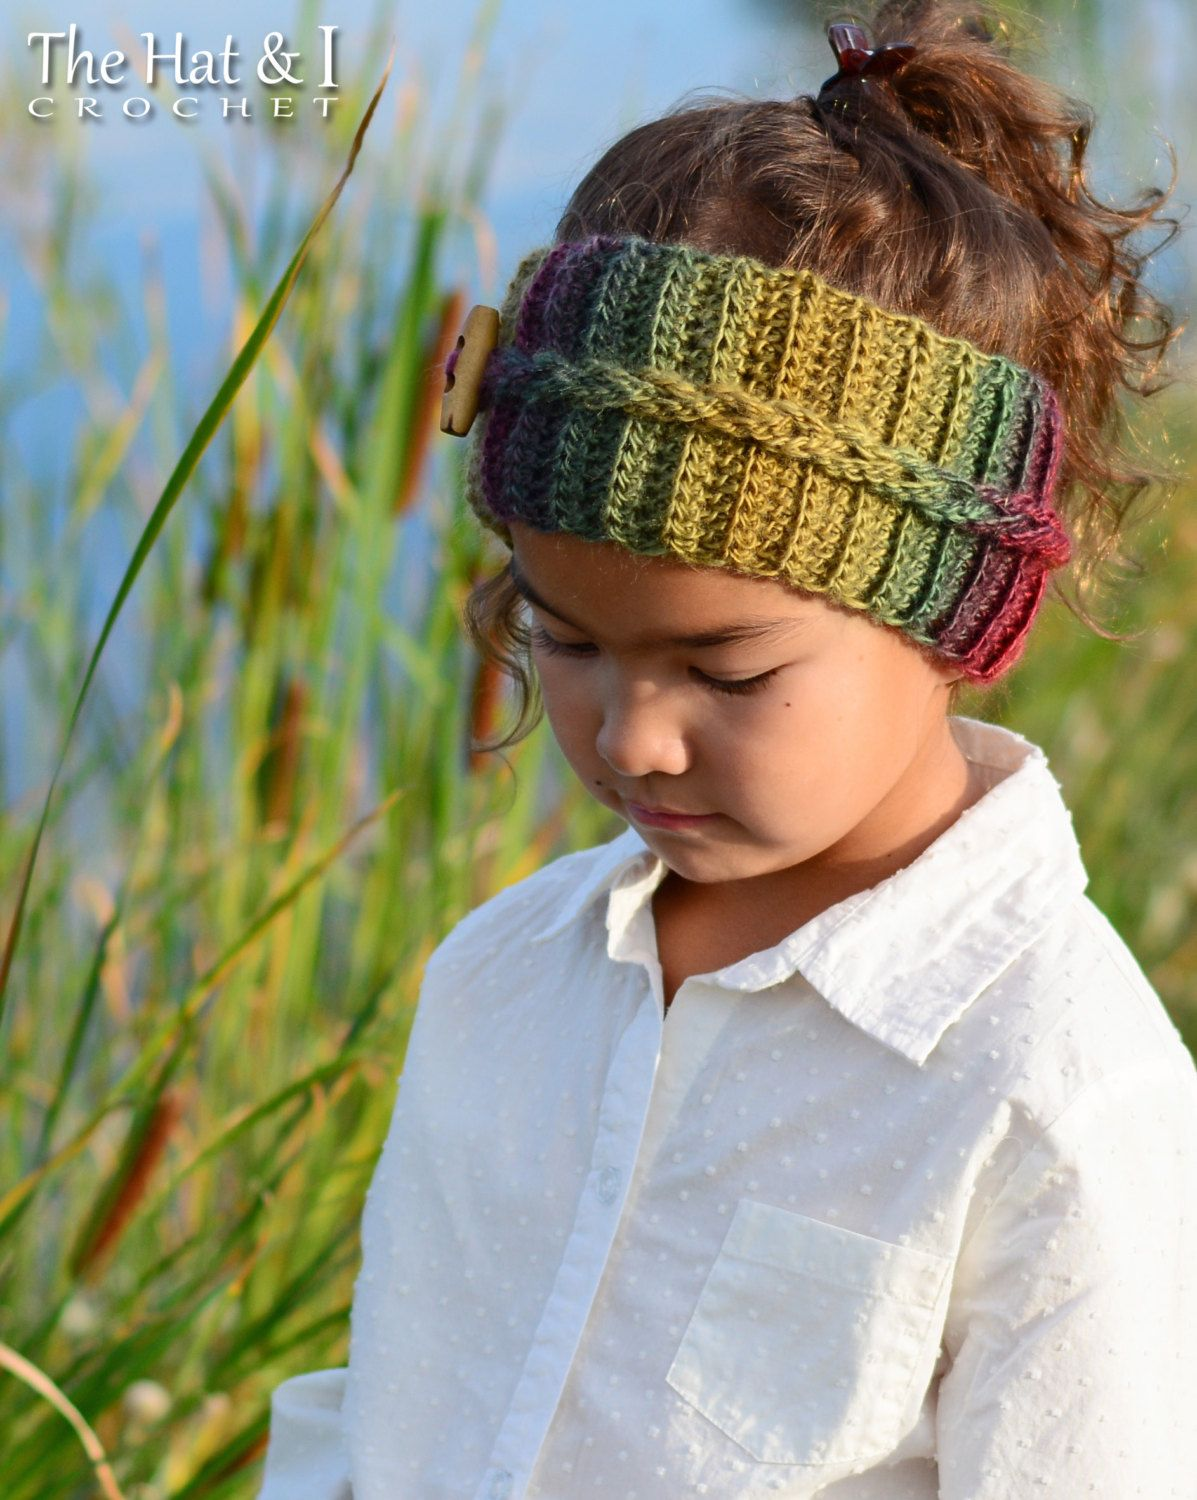 Buy more patterns and S-A-V-E @ http://www.thehatandi.etsy.com Use one of the following coupon codes at checkout: Orders over $15 ~ Enter coupon code SAVE10 and get 10% off your order. Orders over $25 ~ Enter coupon code SAVE15 and get 15% off your order. Orders over $50 ~ Enter coupon code SAVE20 and get 20% off your order. *********** This listing is for a CROCHET PATTERN in PDF format. *********** Elegant, yet easy to make! A beautiful head wrap pattern for the ladies and sweet...